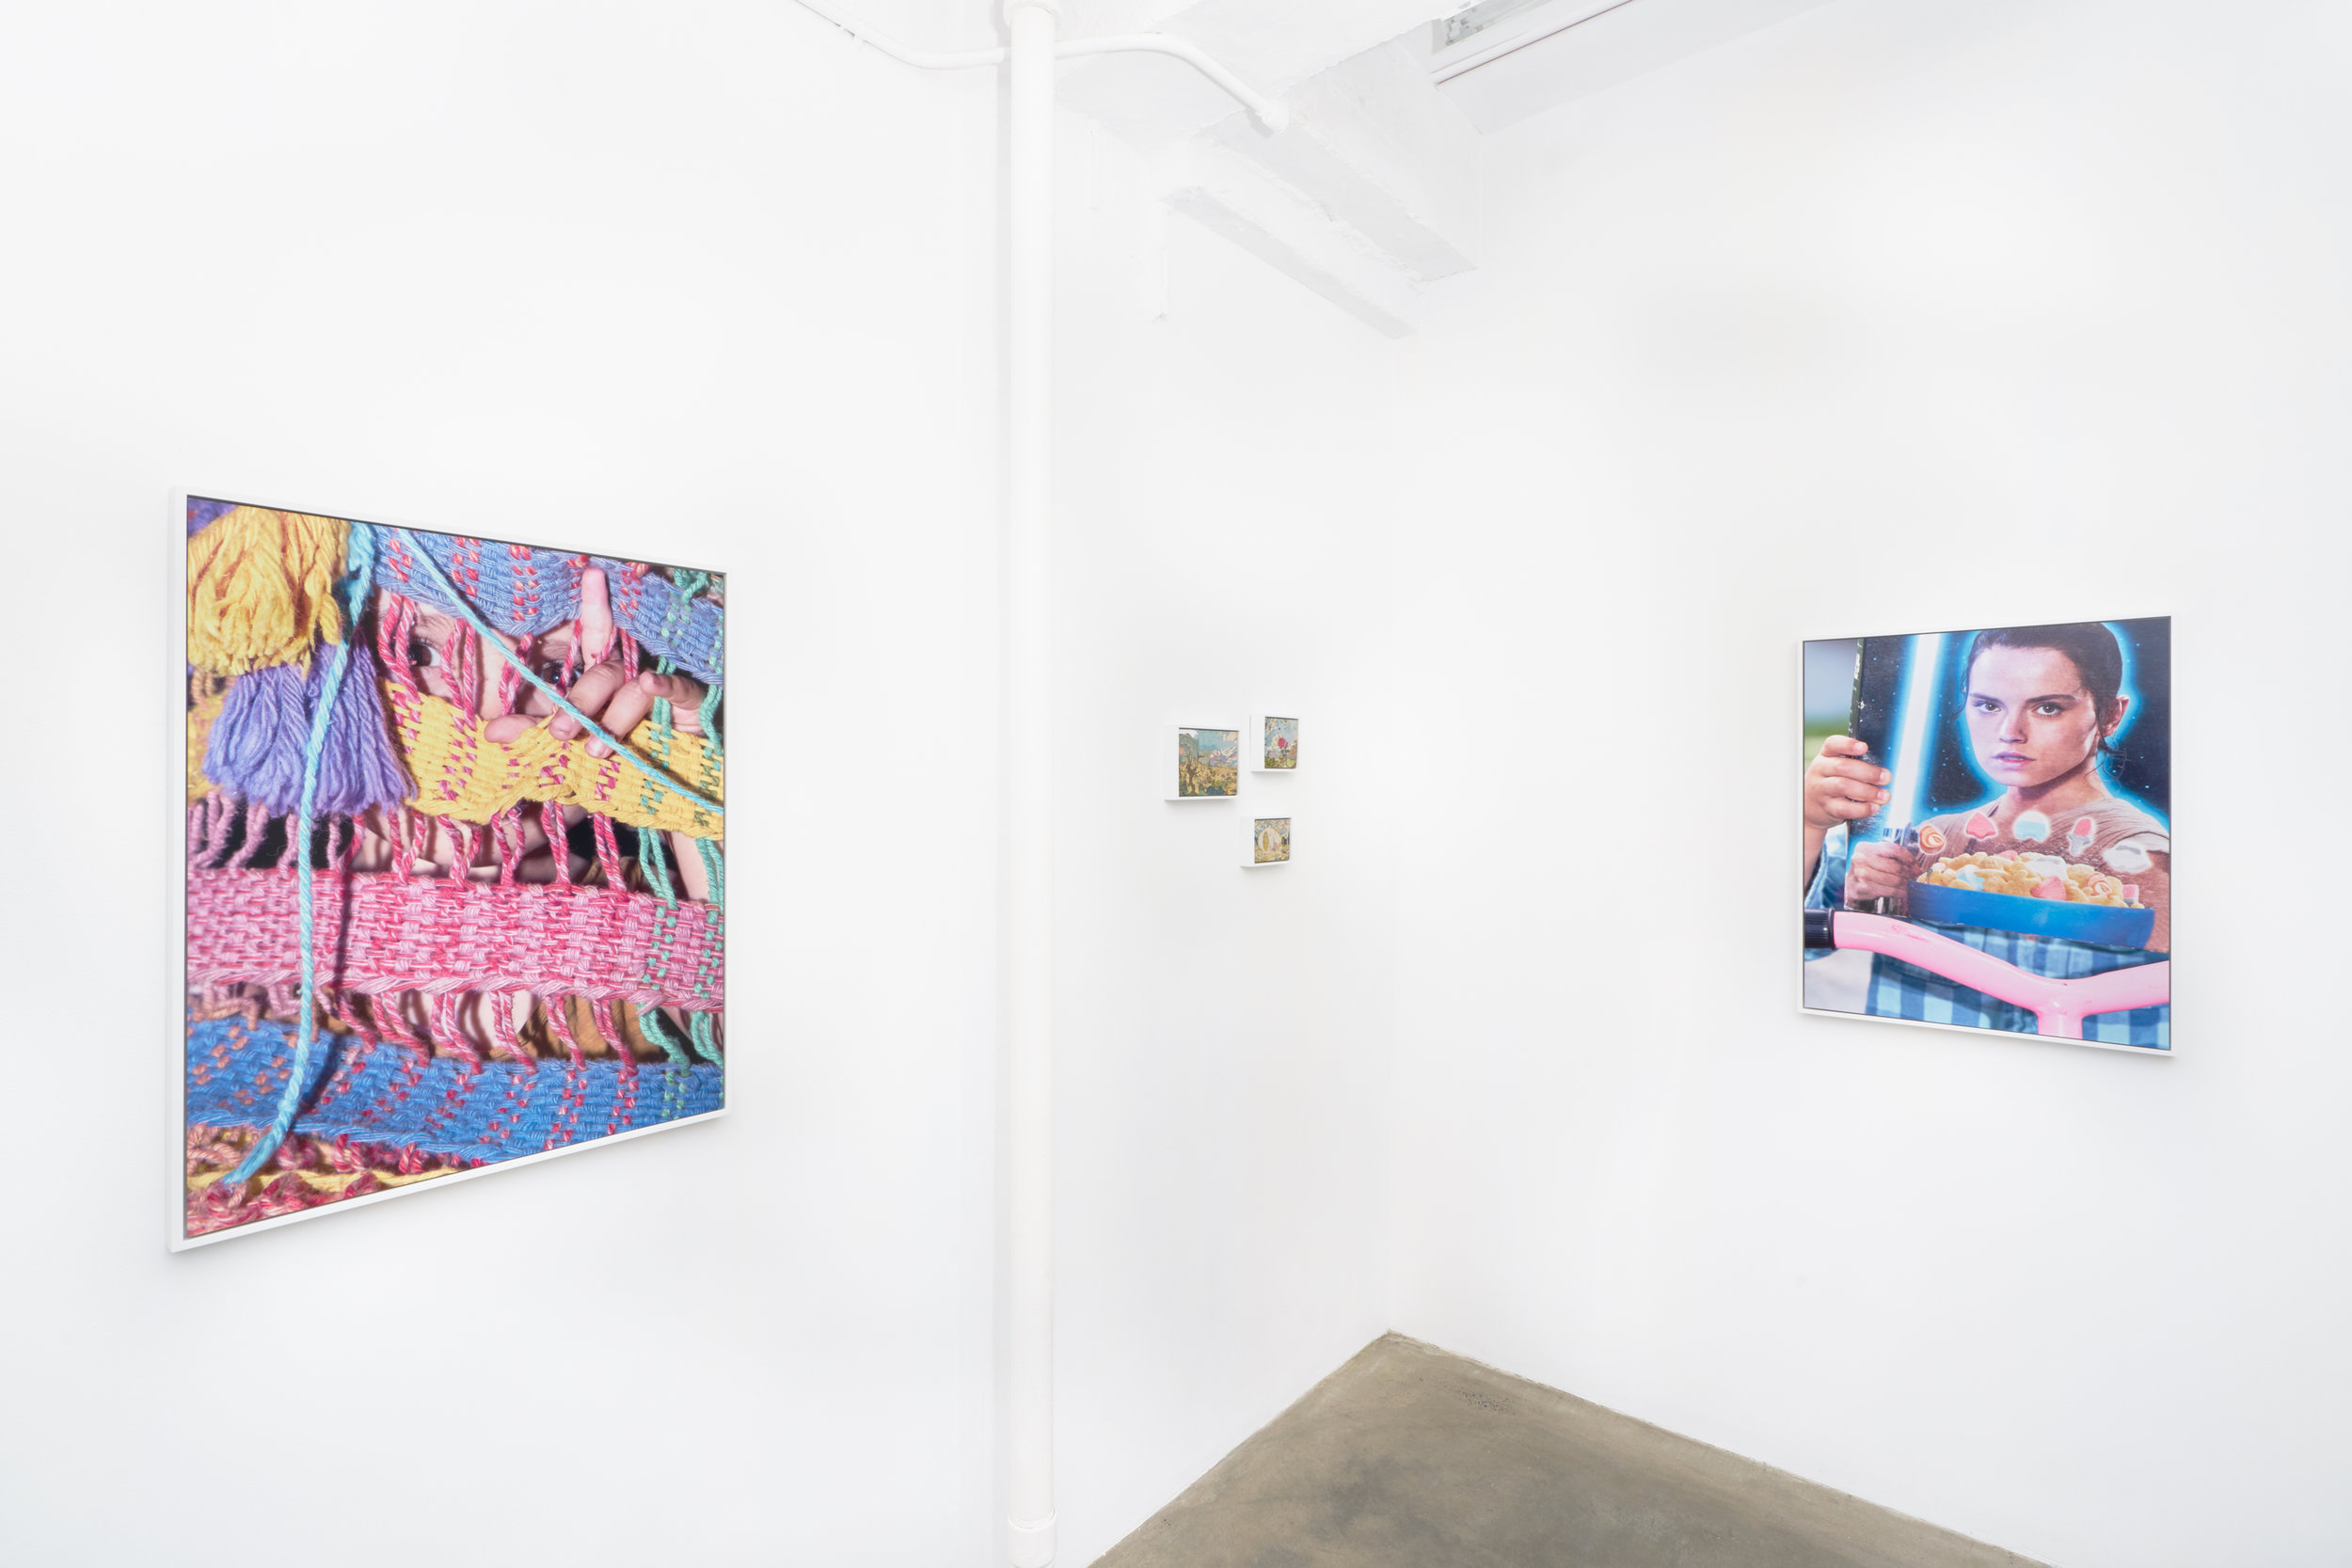 Installation view of framed photographs in Scott Alario's solo exhibition 'Soft Landing'